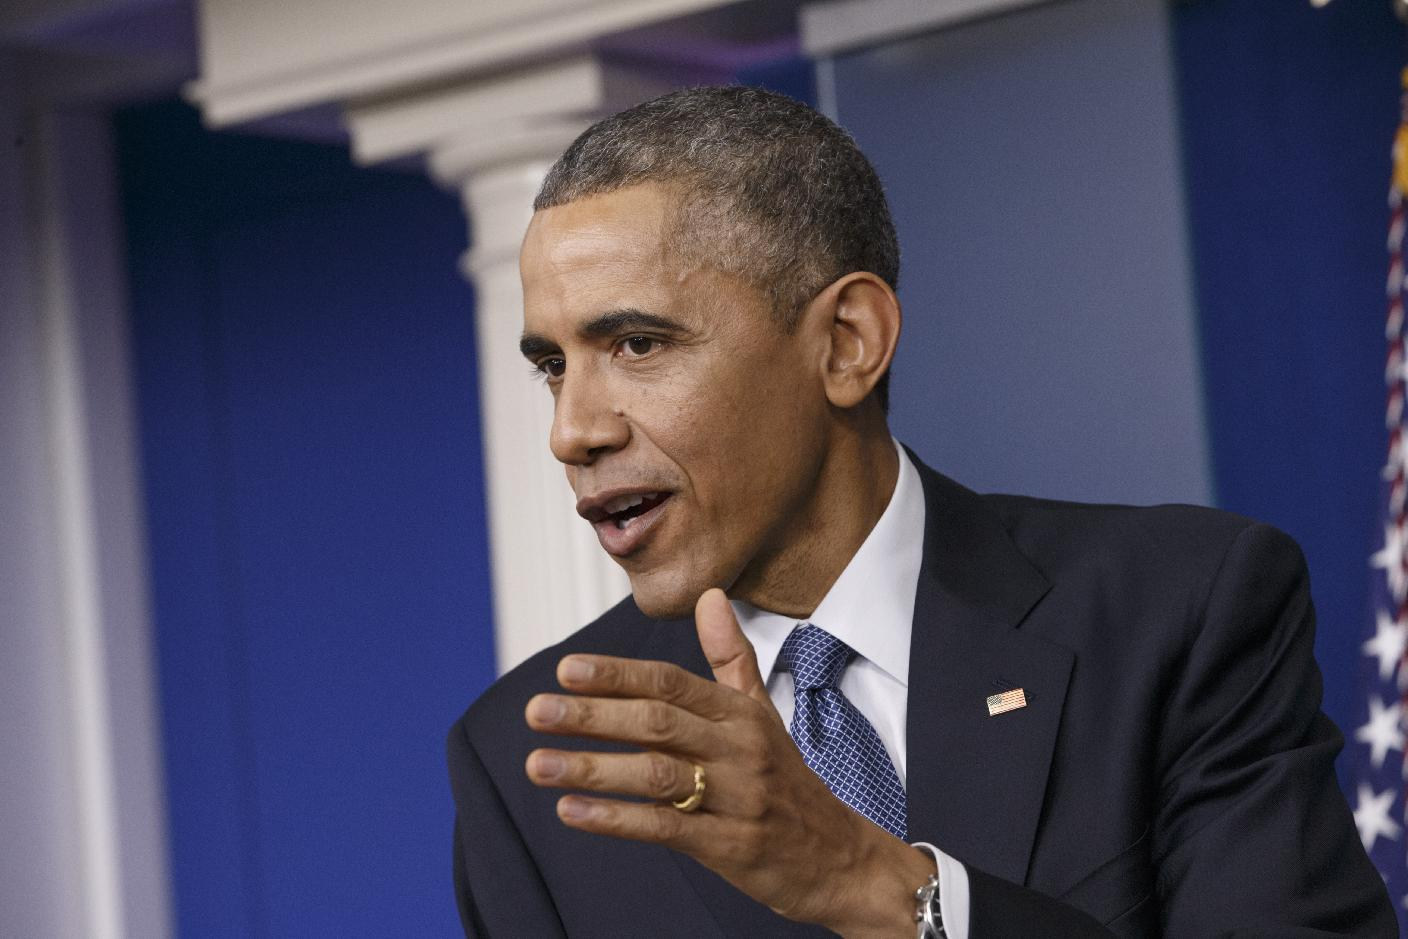 Obama says North Korea hacked Sony, vows response